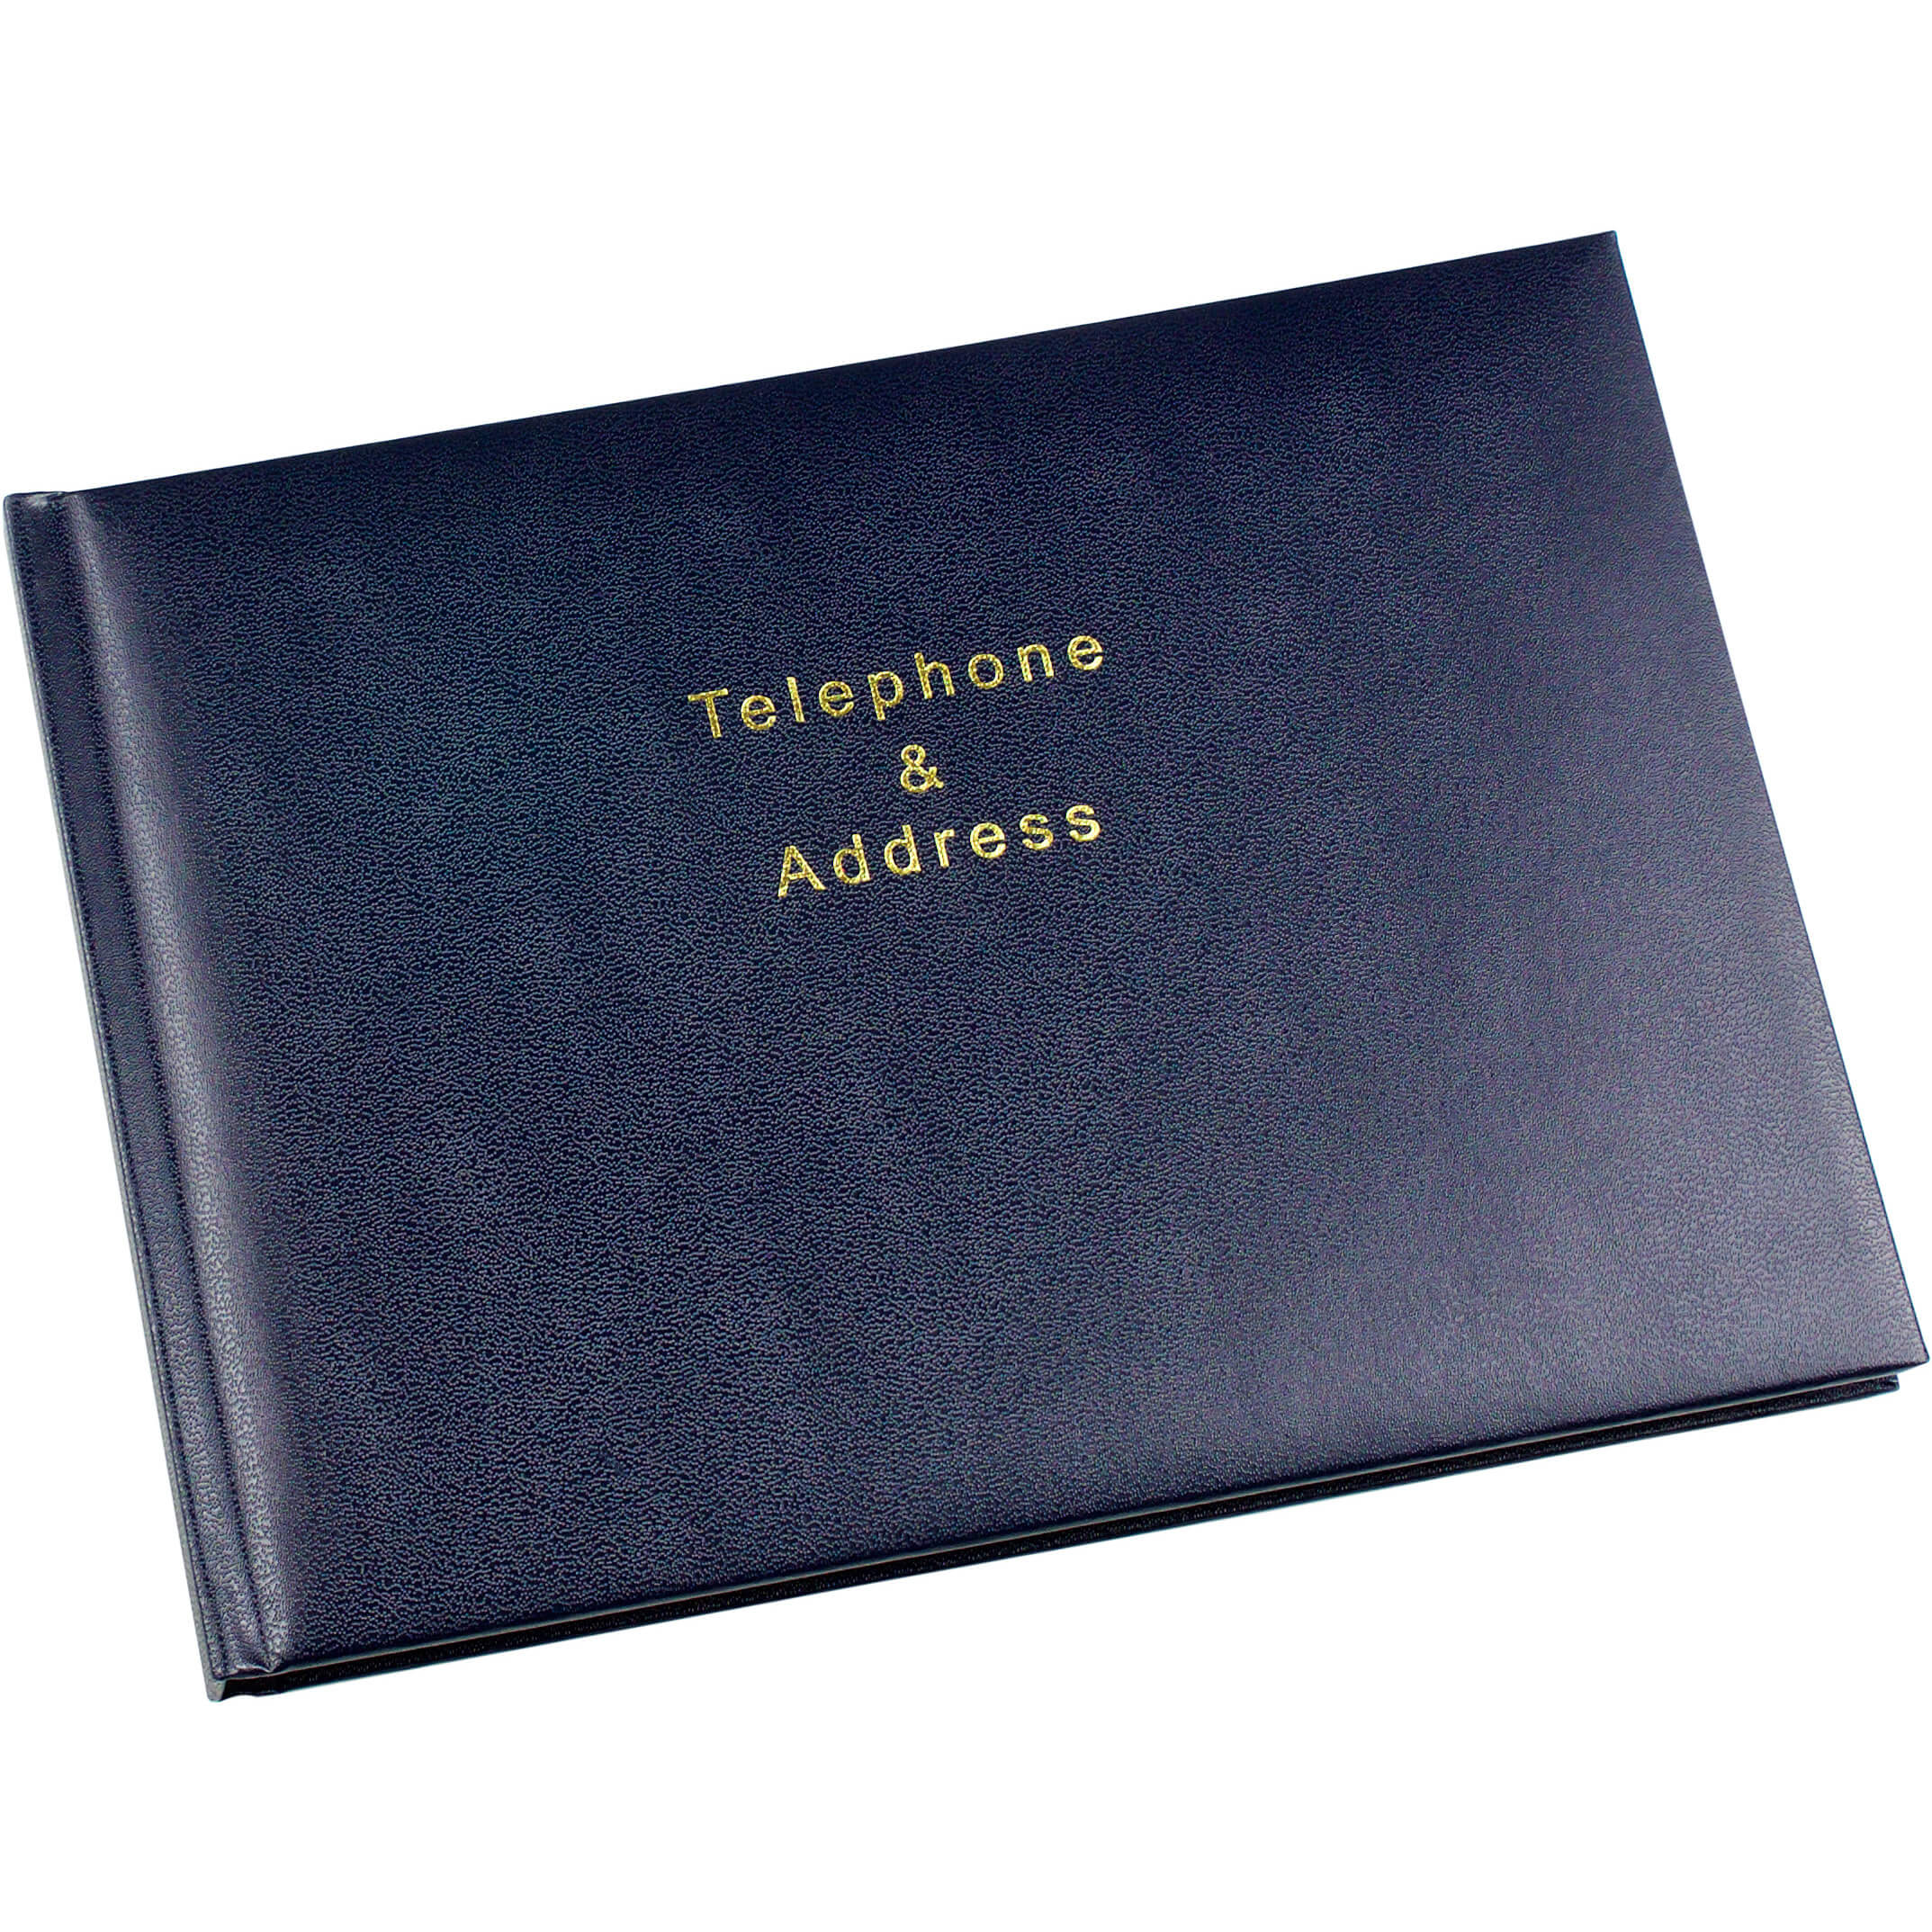 Esposti Landscape Telephone & Address Book - 64 pages - Blue - Size 215 x 160mm